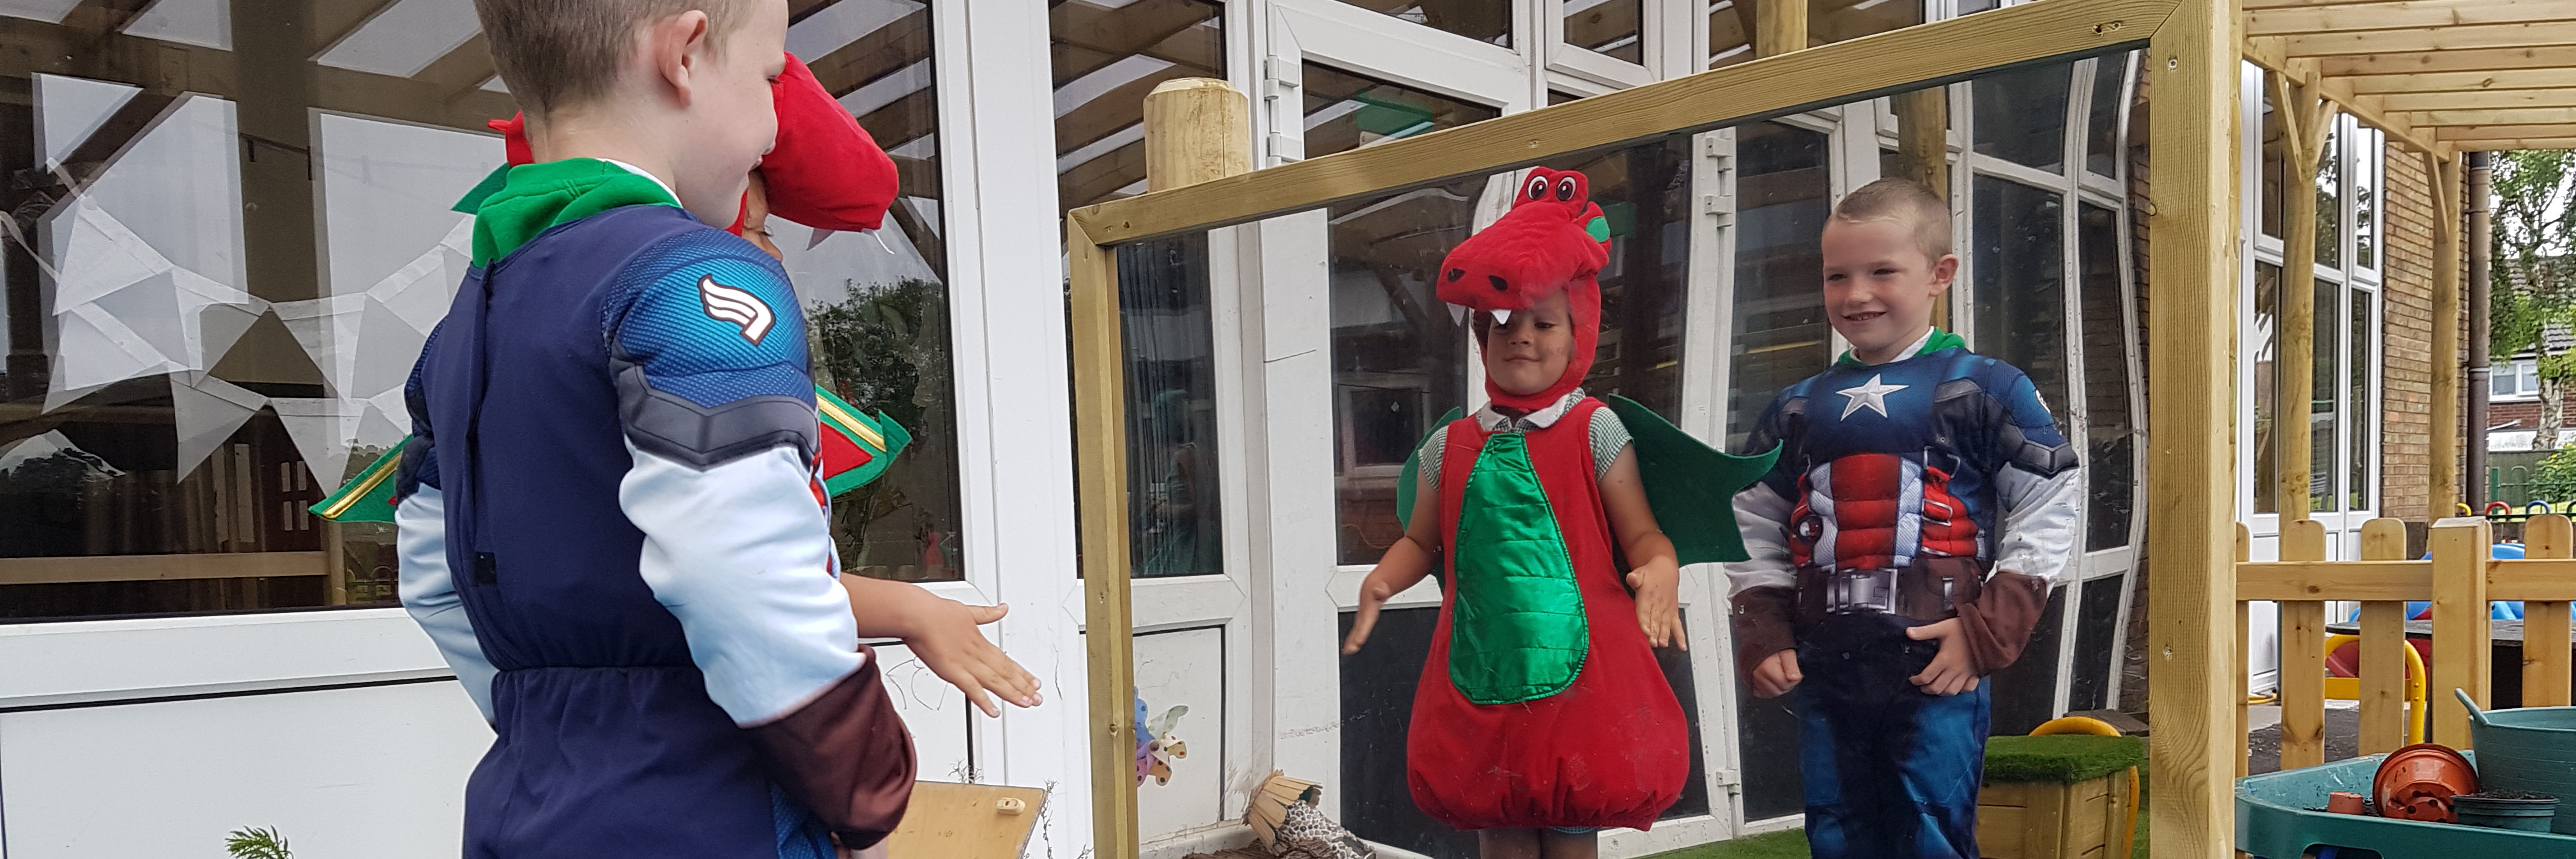 Two young children enjoy looking at themselves in large outdoor mirror